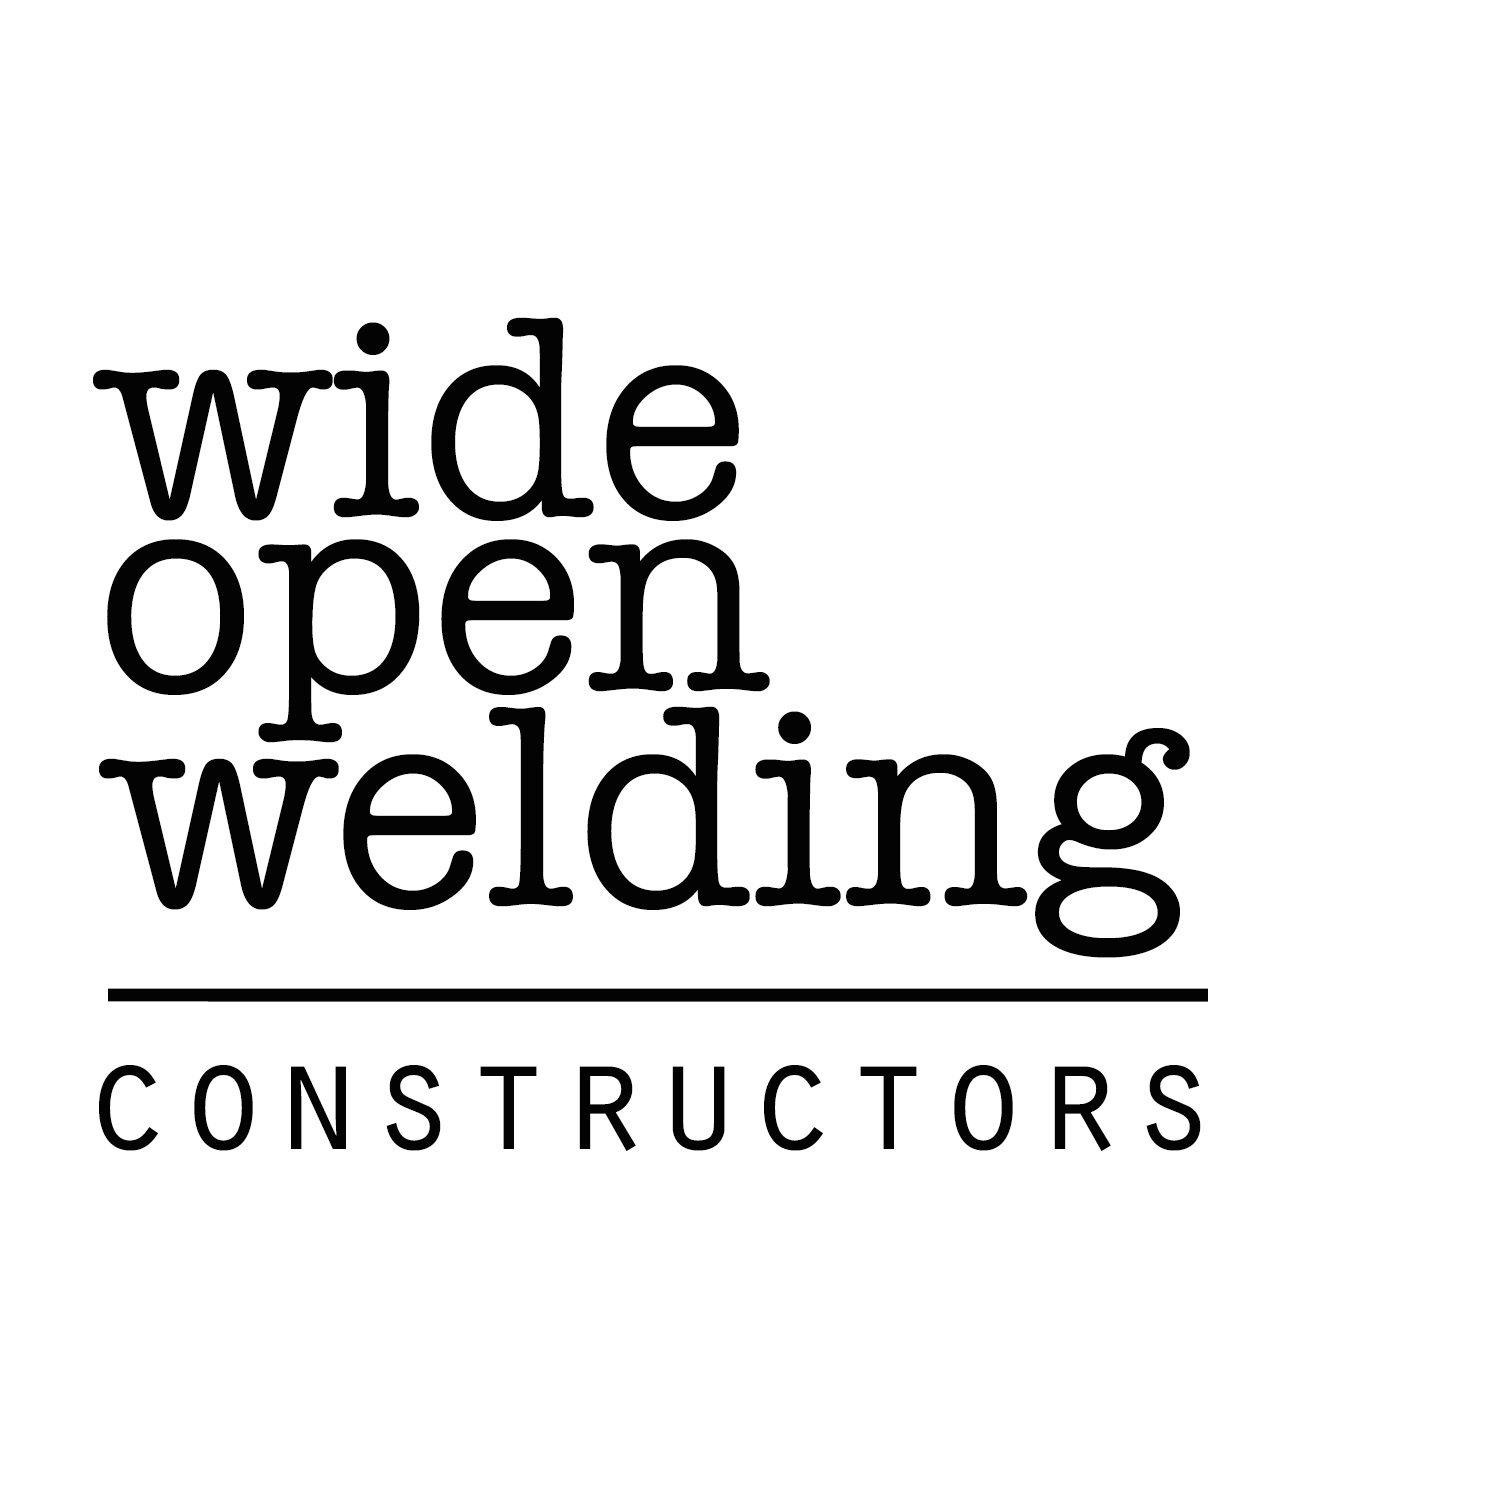 wide open welding